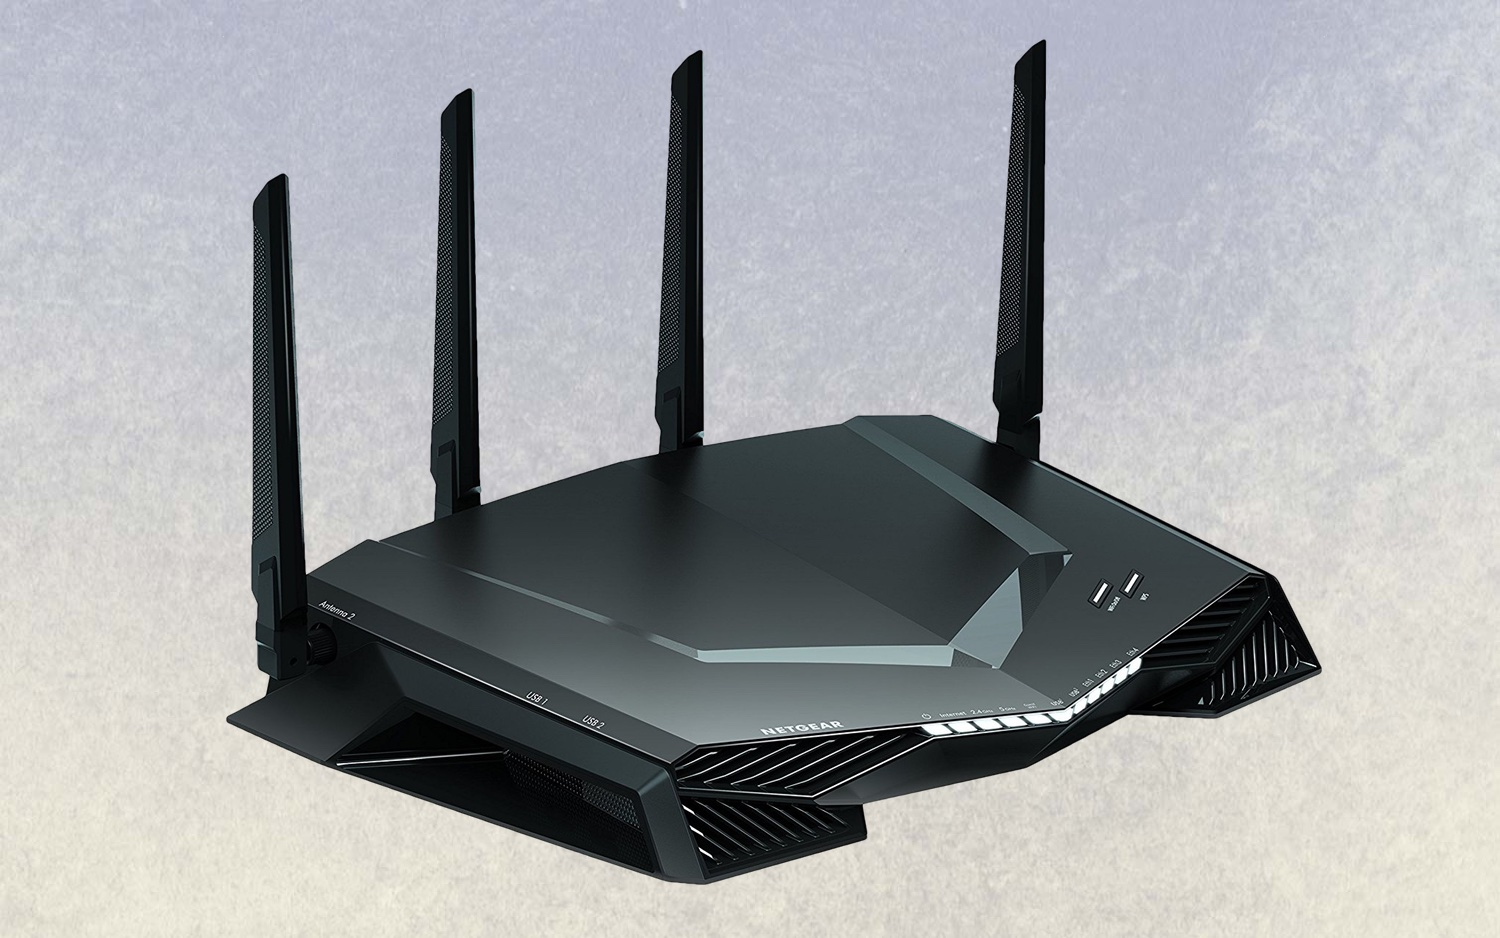 Netgear Nighthawk XR500 Pro Gaming Router – Full Review and